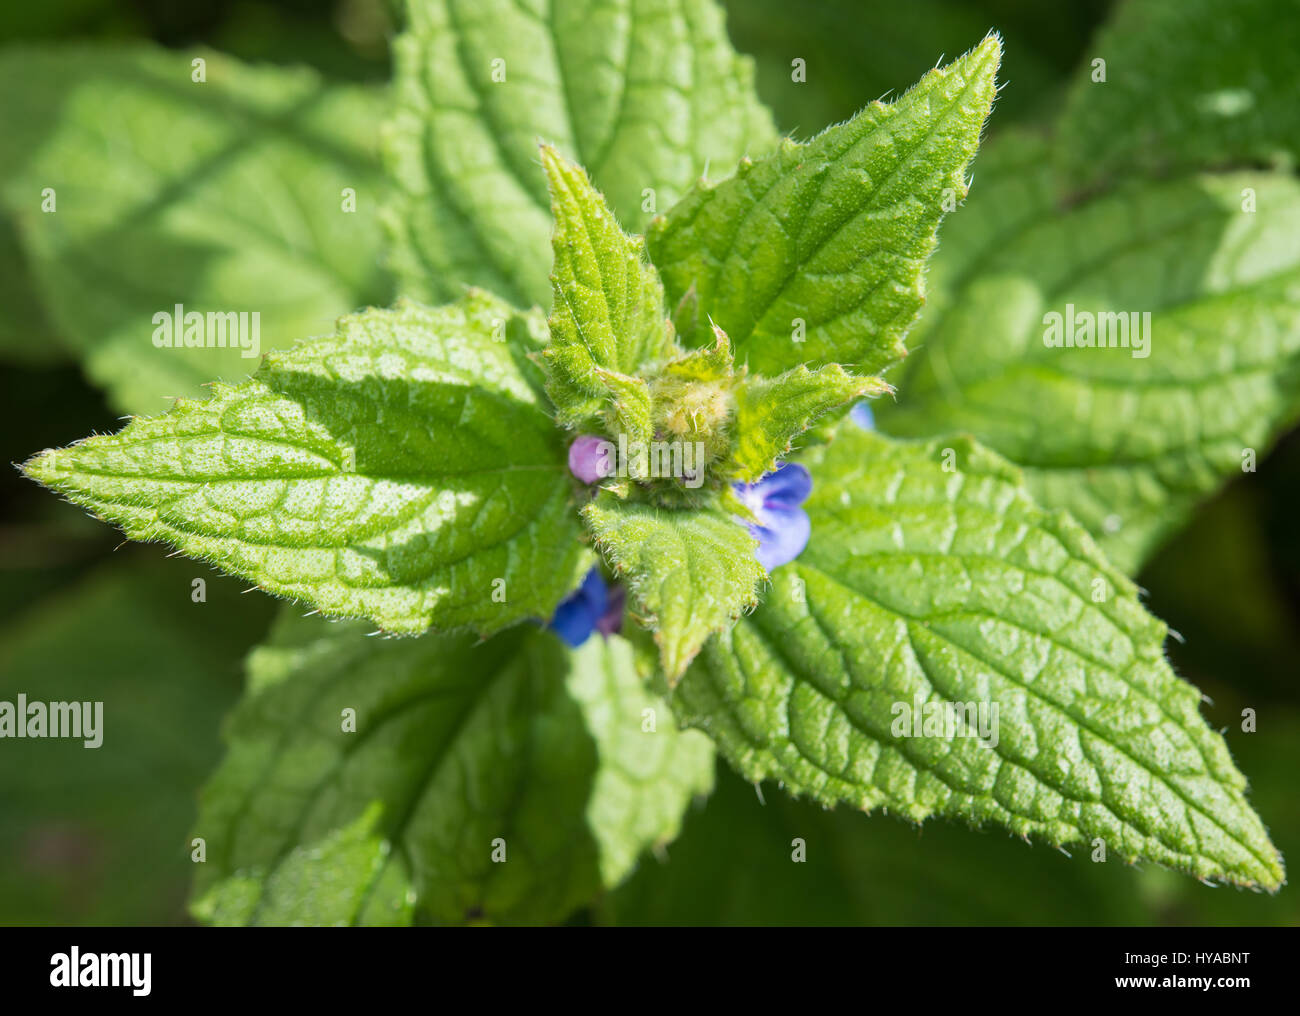 Green Alkanet leaves with flowers - Stock Image